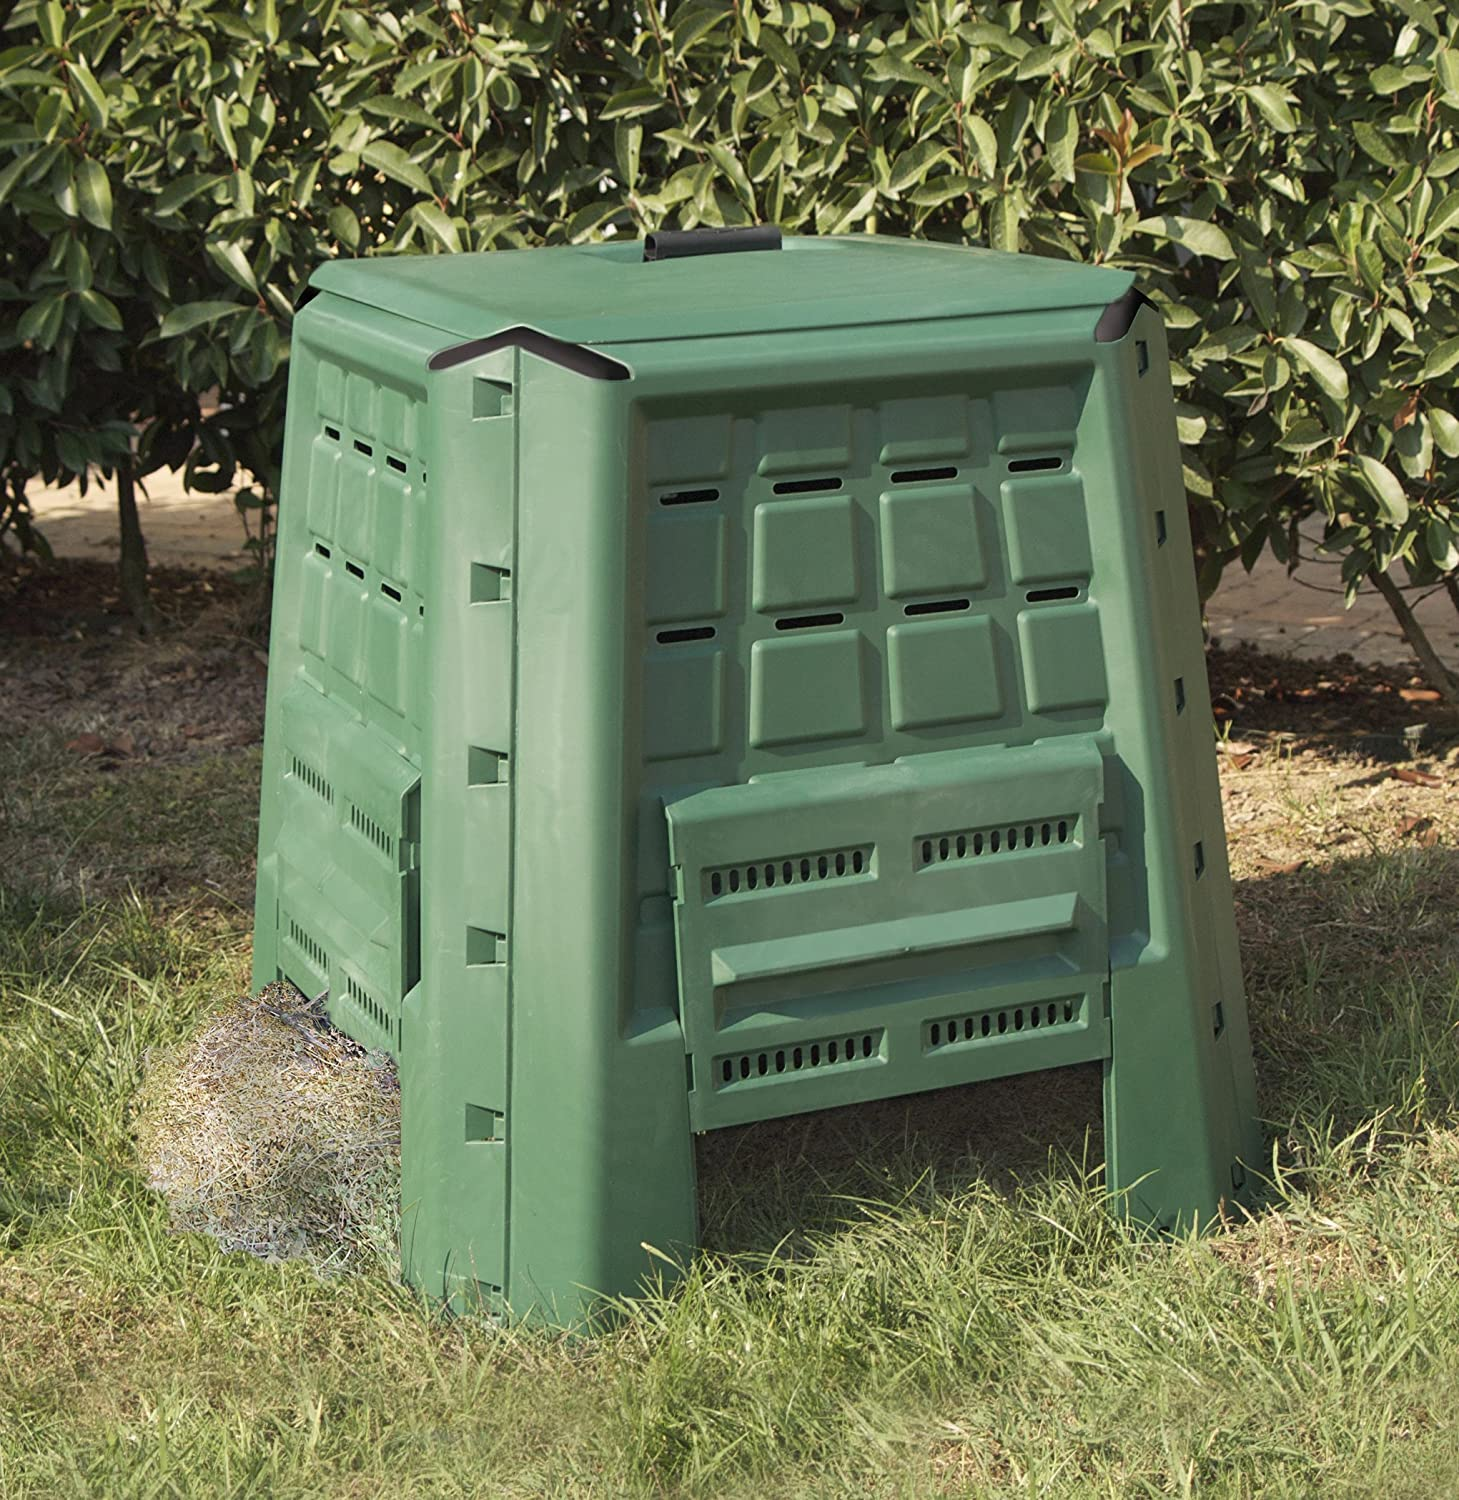 Art Plast BC380 Composter In Plastica, Robusto, Verde: Amazon.it: Fai Da Te